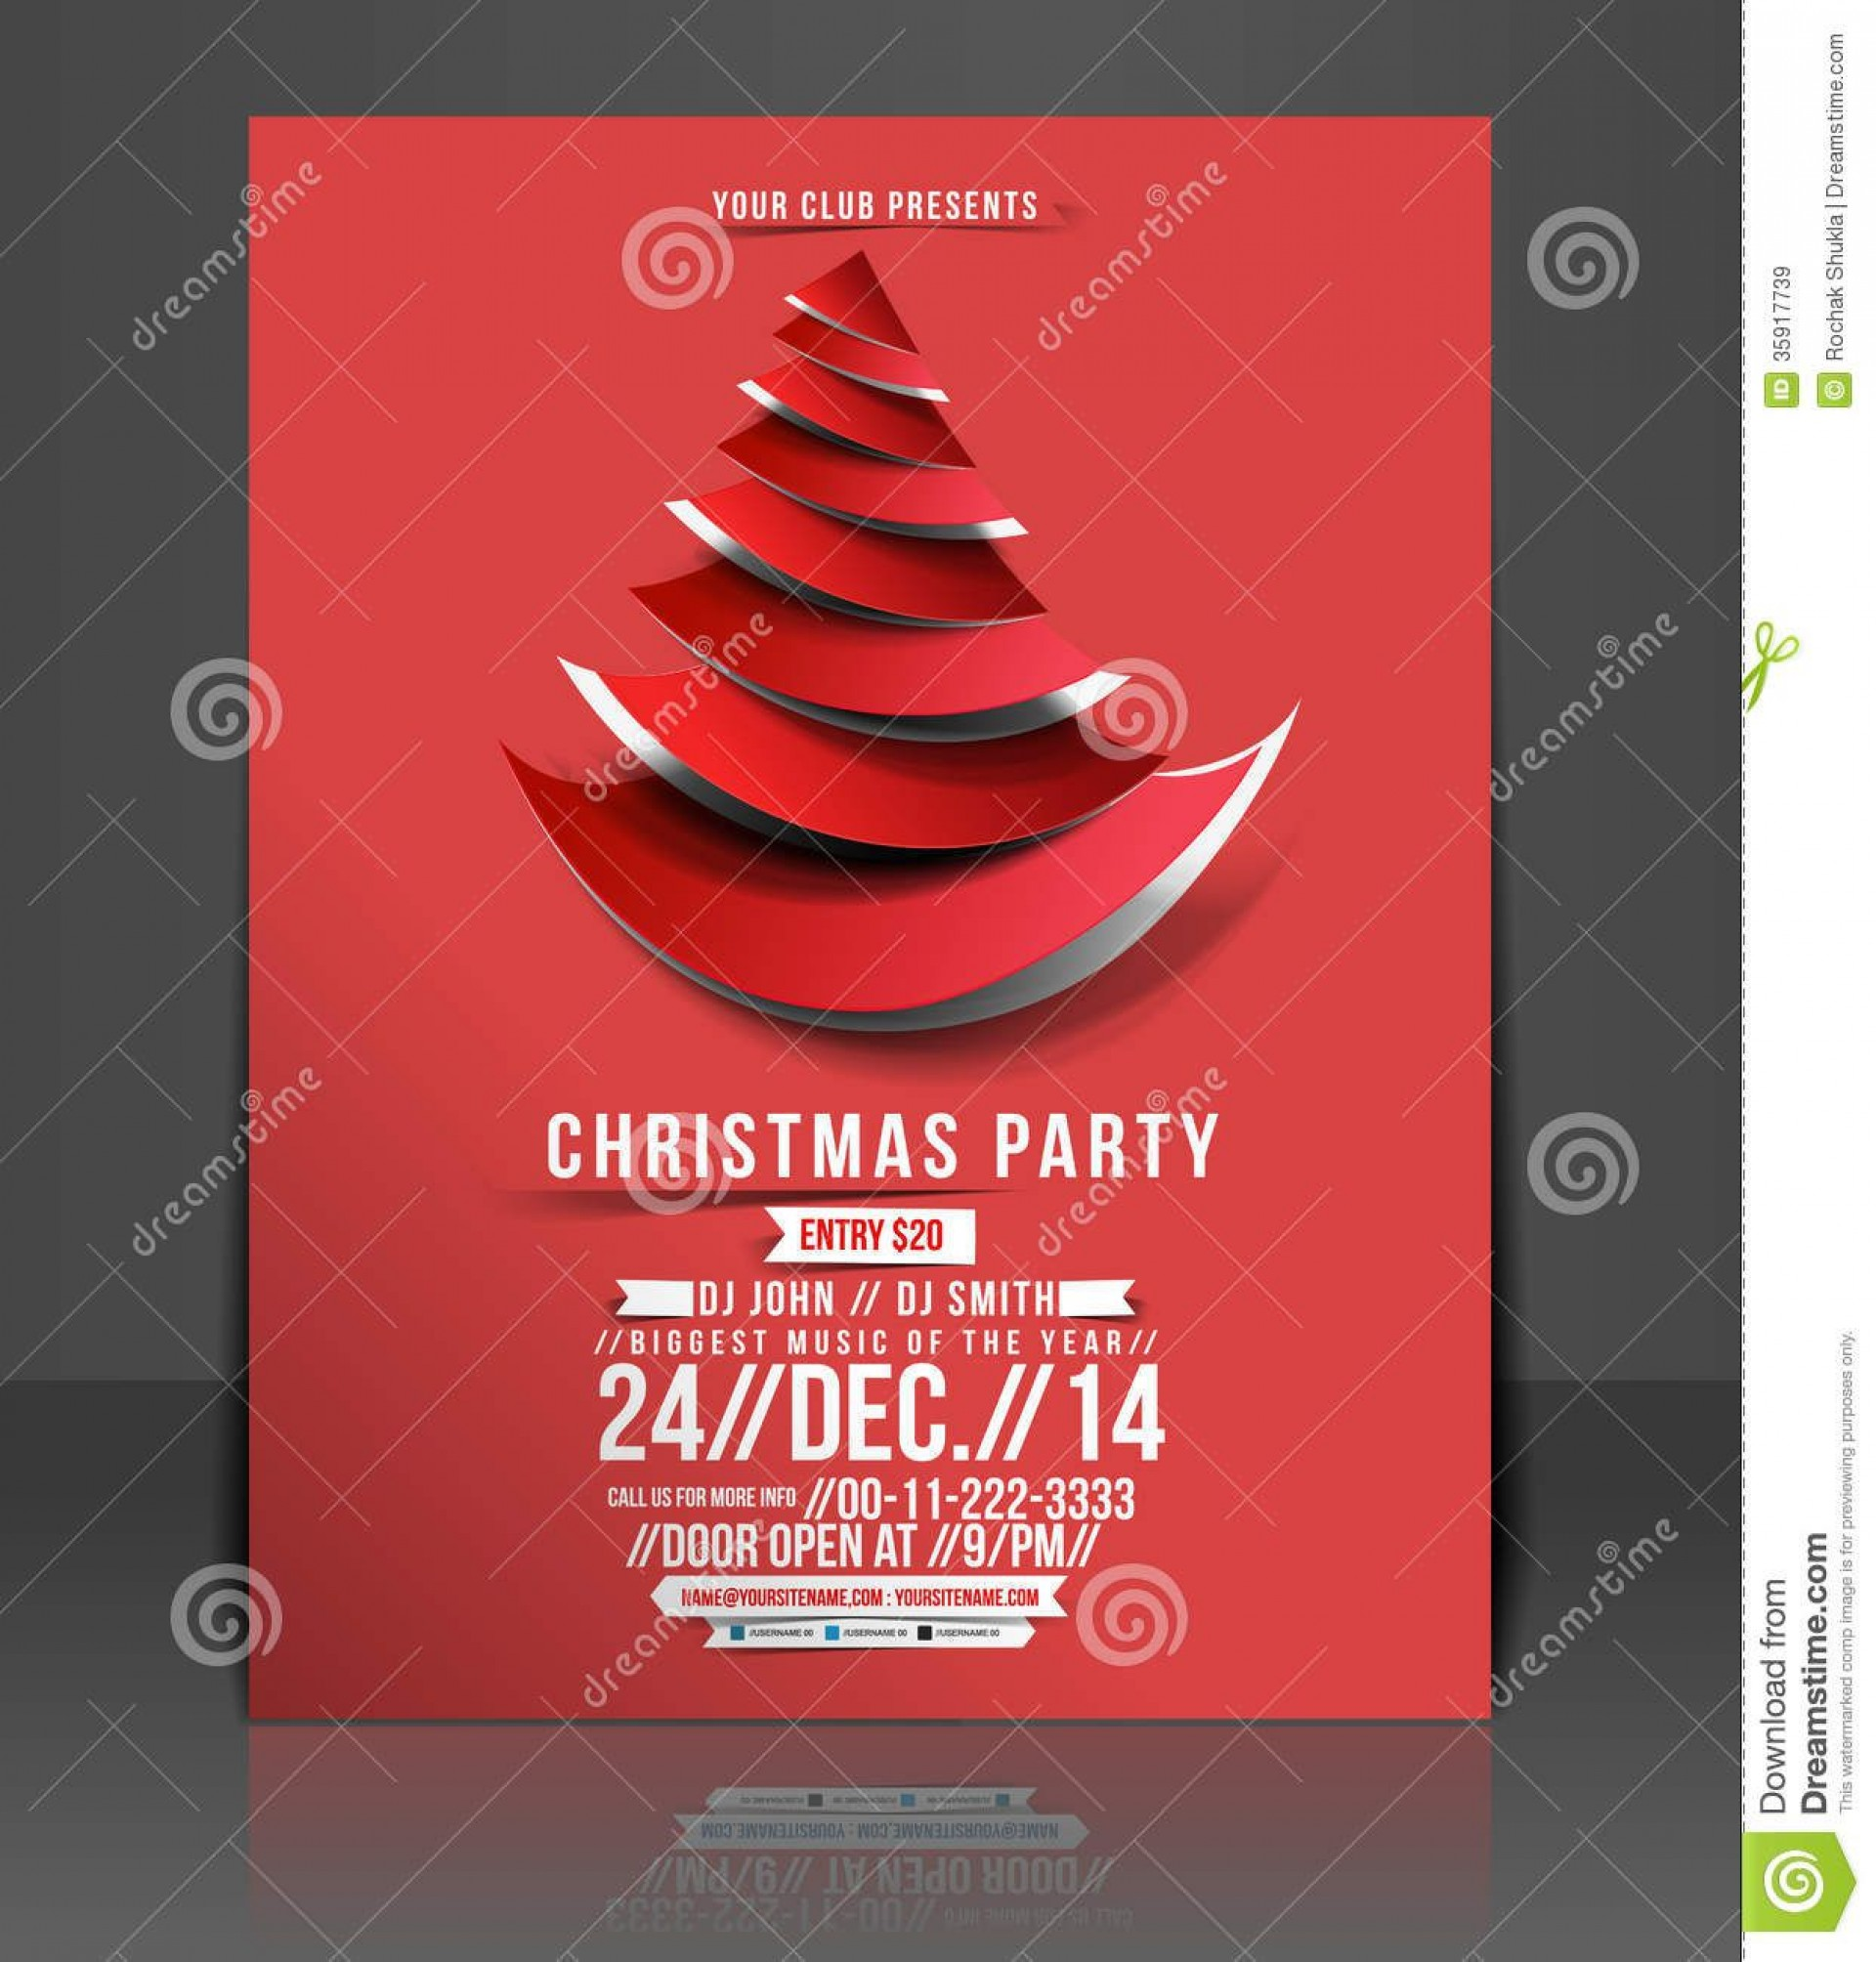 007 Staggering Free Holiday Party Flyer Template Word Inspiration 1920